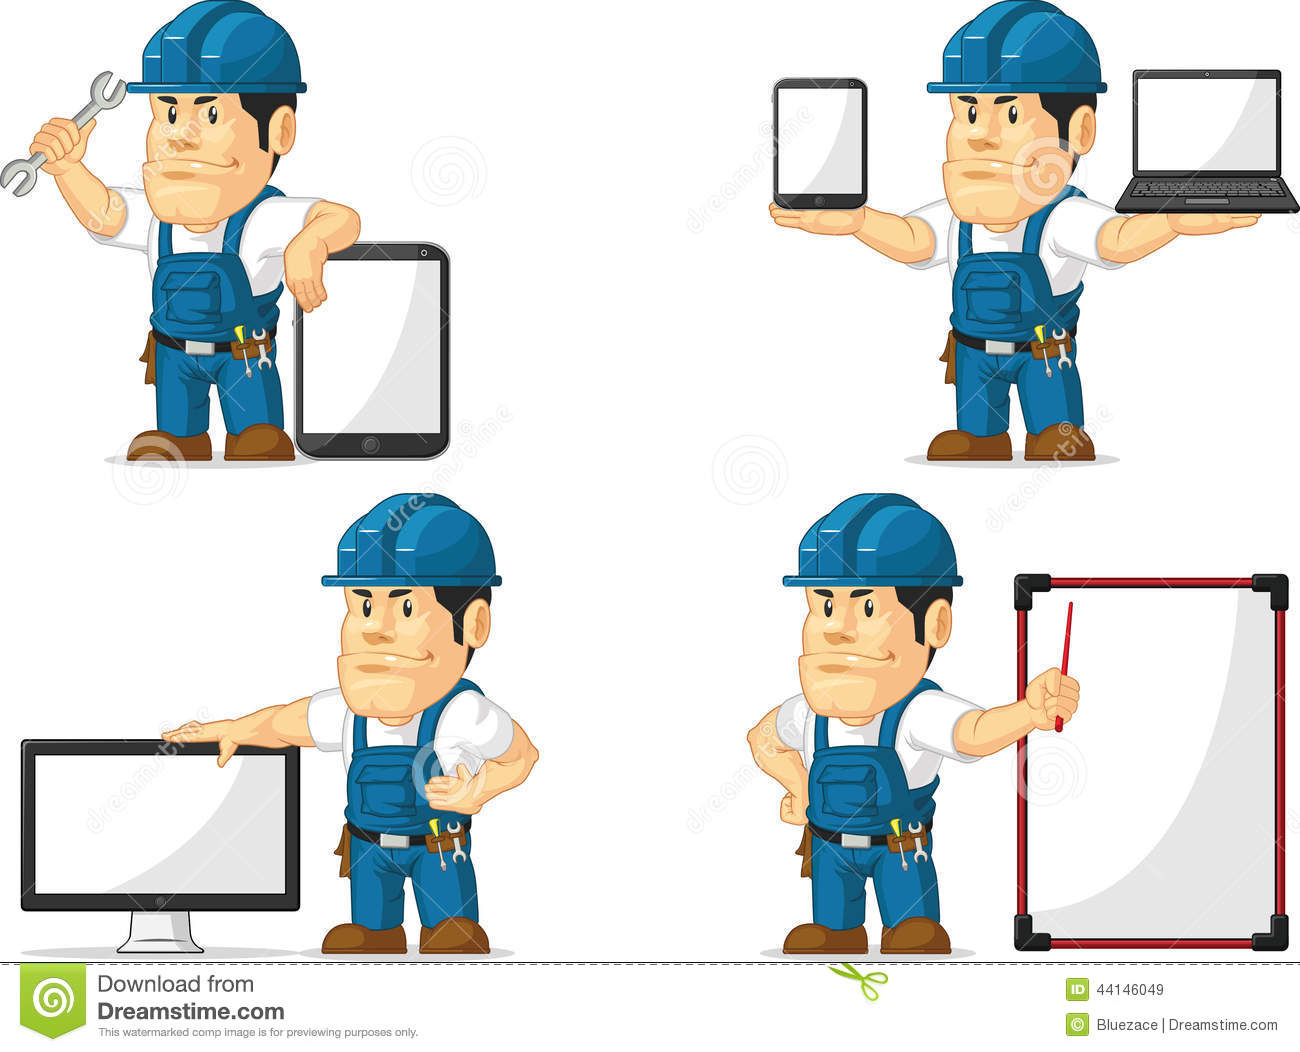 ... vector-set-male-repairman-several-poses-drawn-cartoon-style-vectorIphone 5 Template Vector